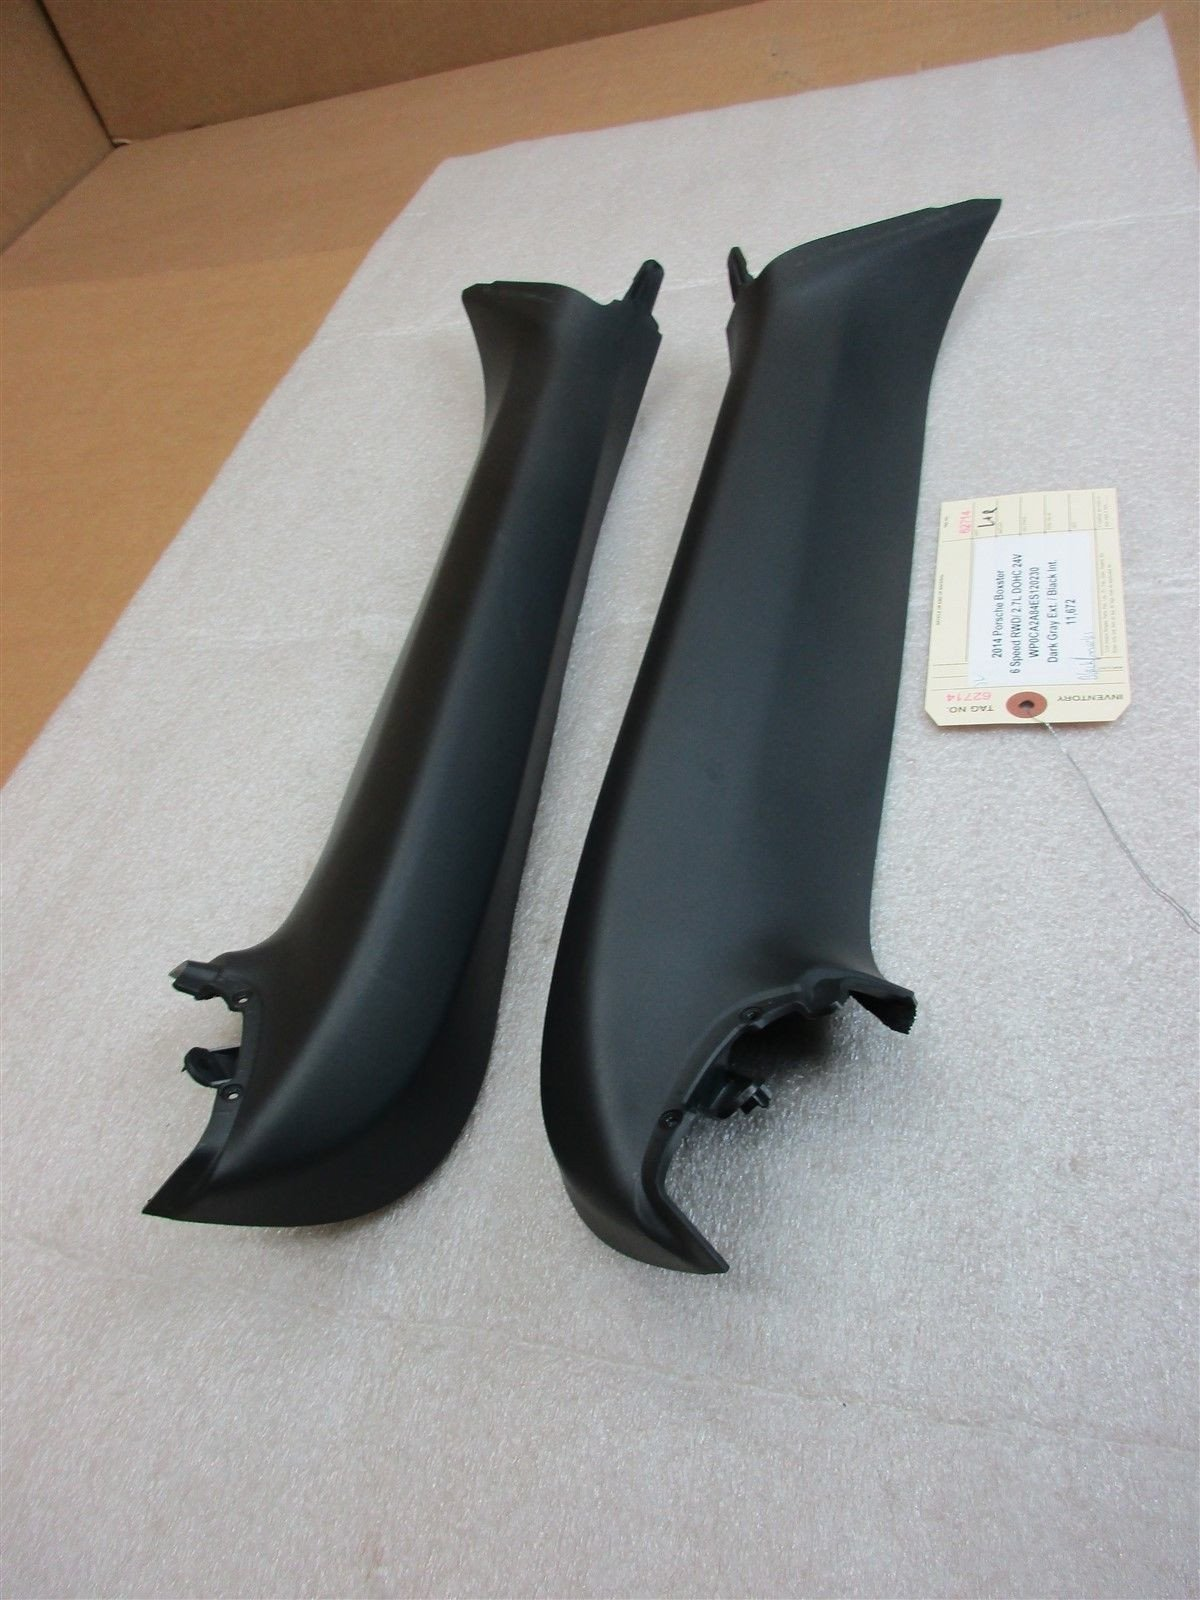 14 Boxster Porsche 981 L R Black A-PILLAR TRIMS 981555181061 981555182061 11,672